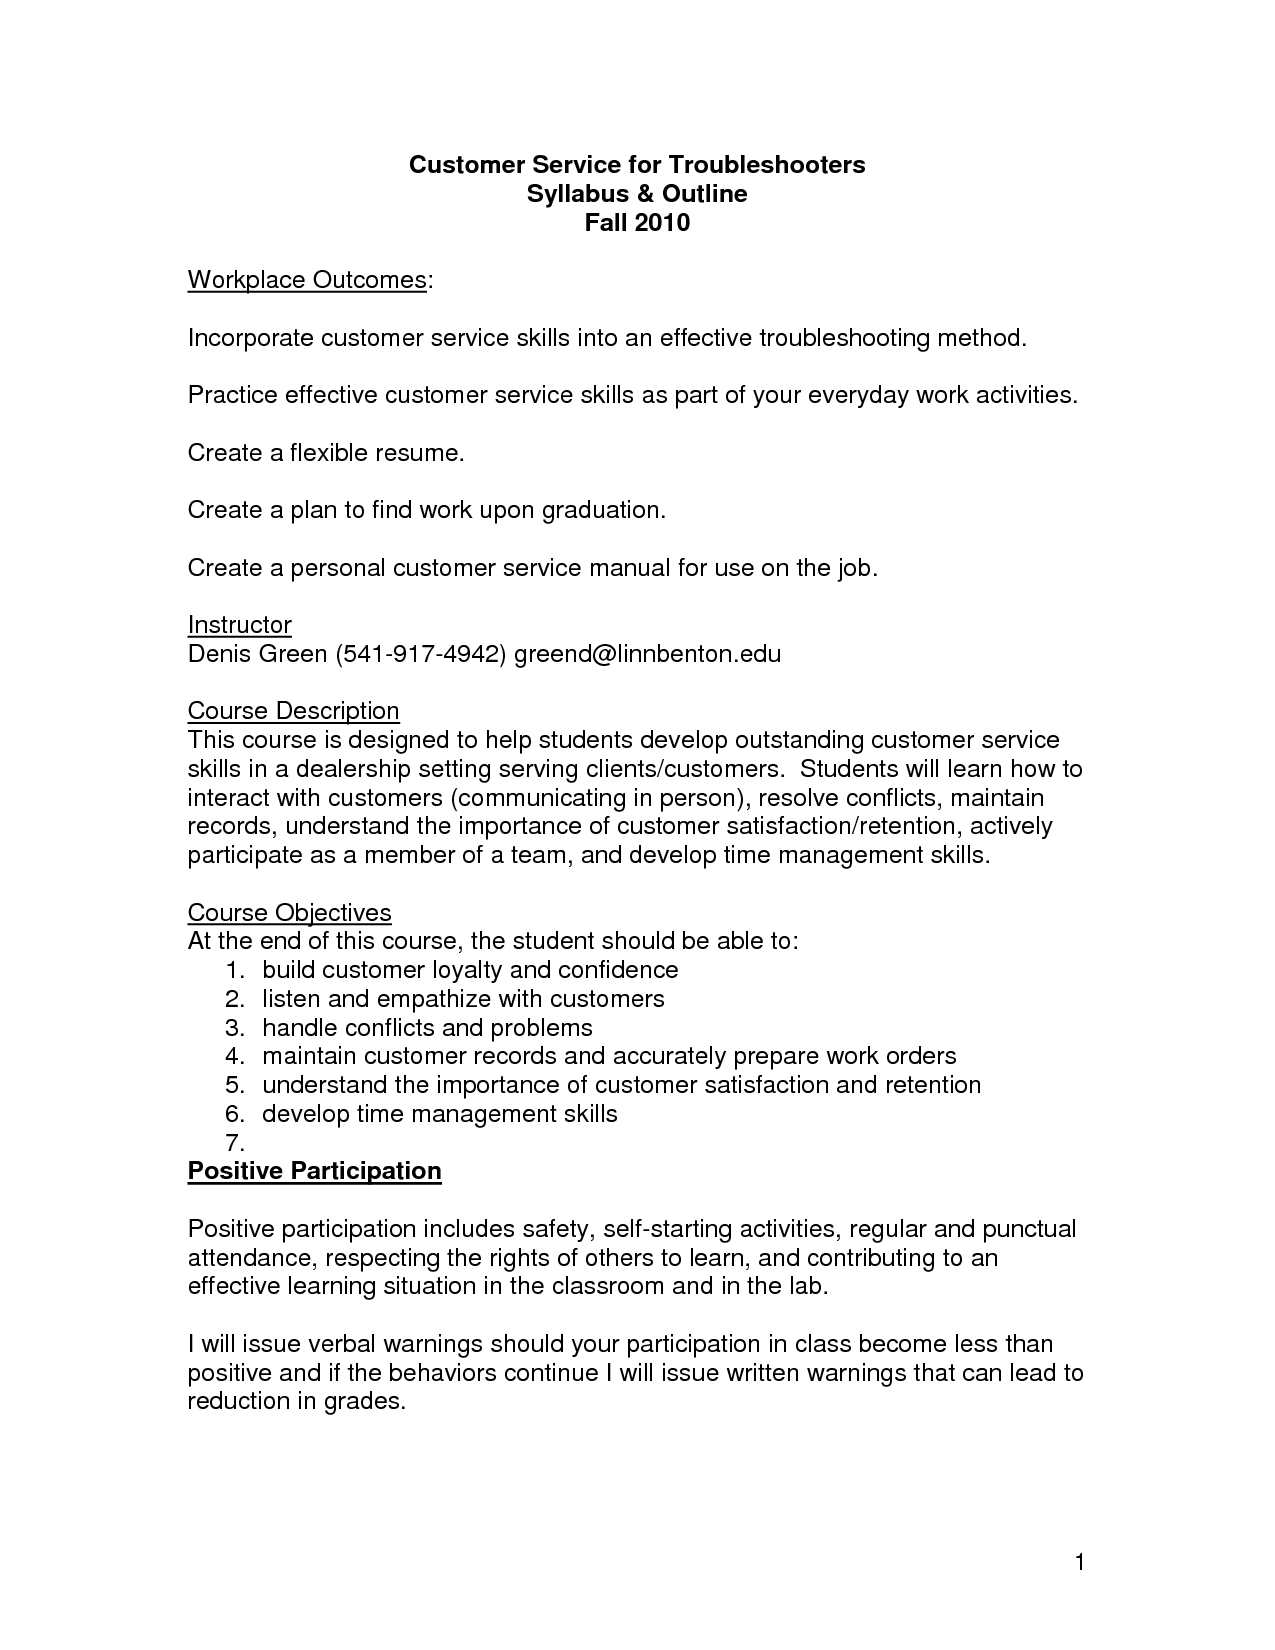 good customer service skills resume - April.onthemarch.co